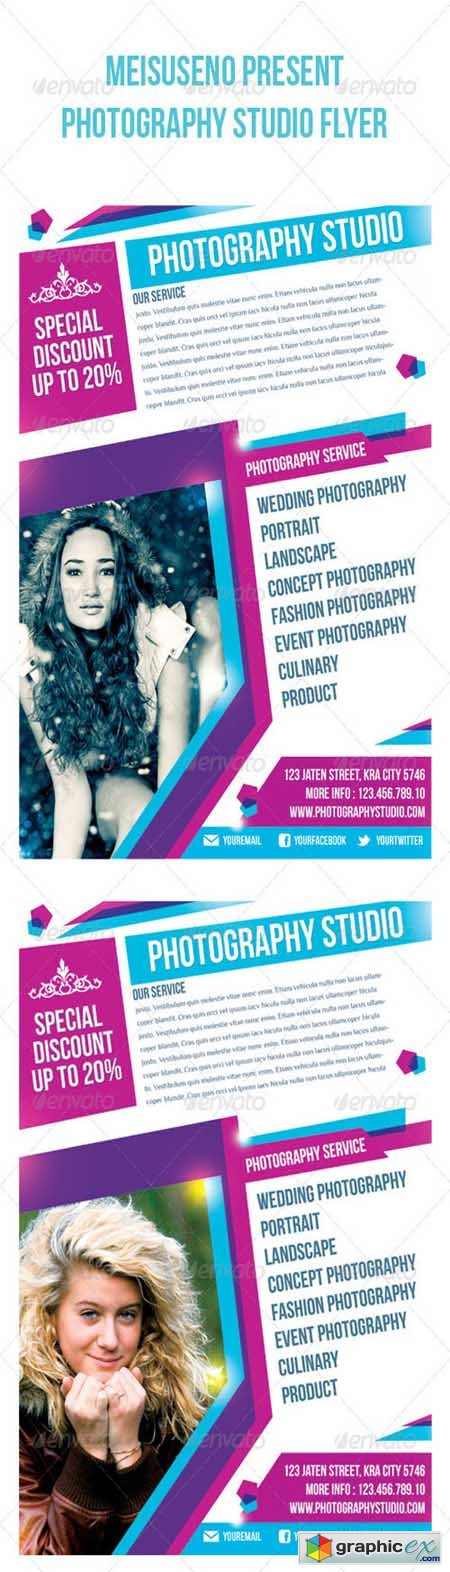 Photography Studio Flyer